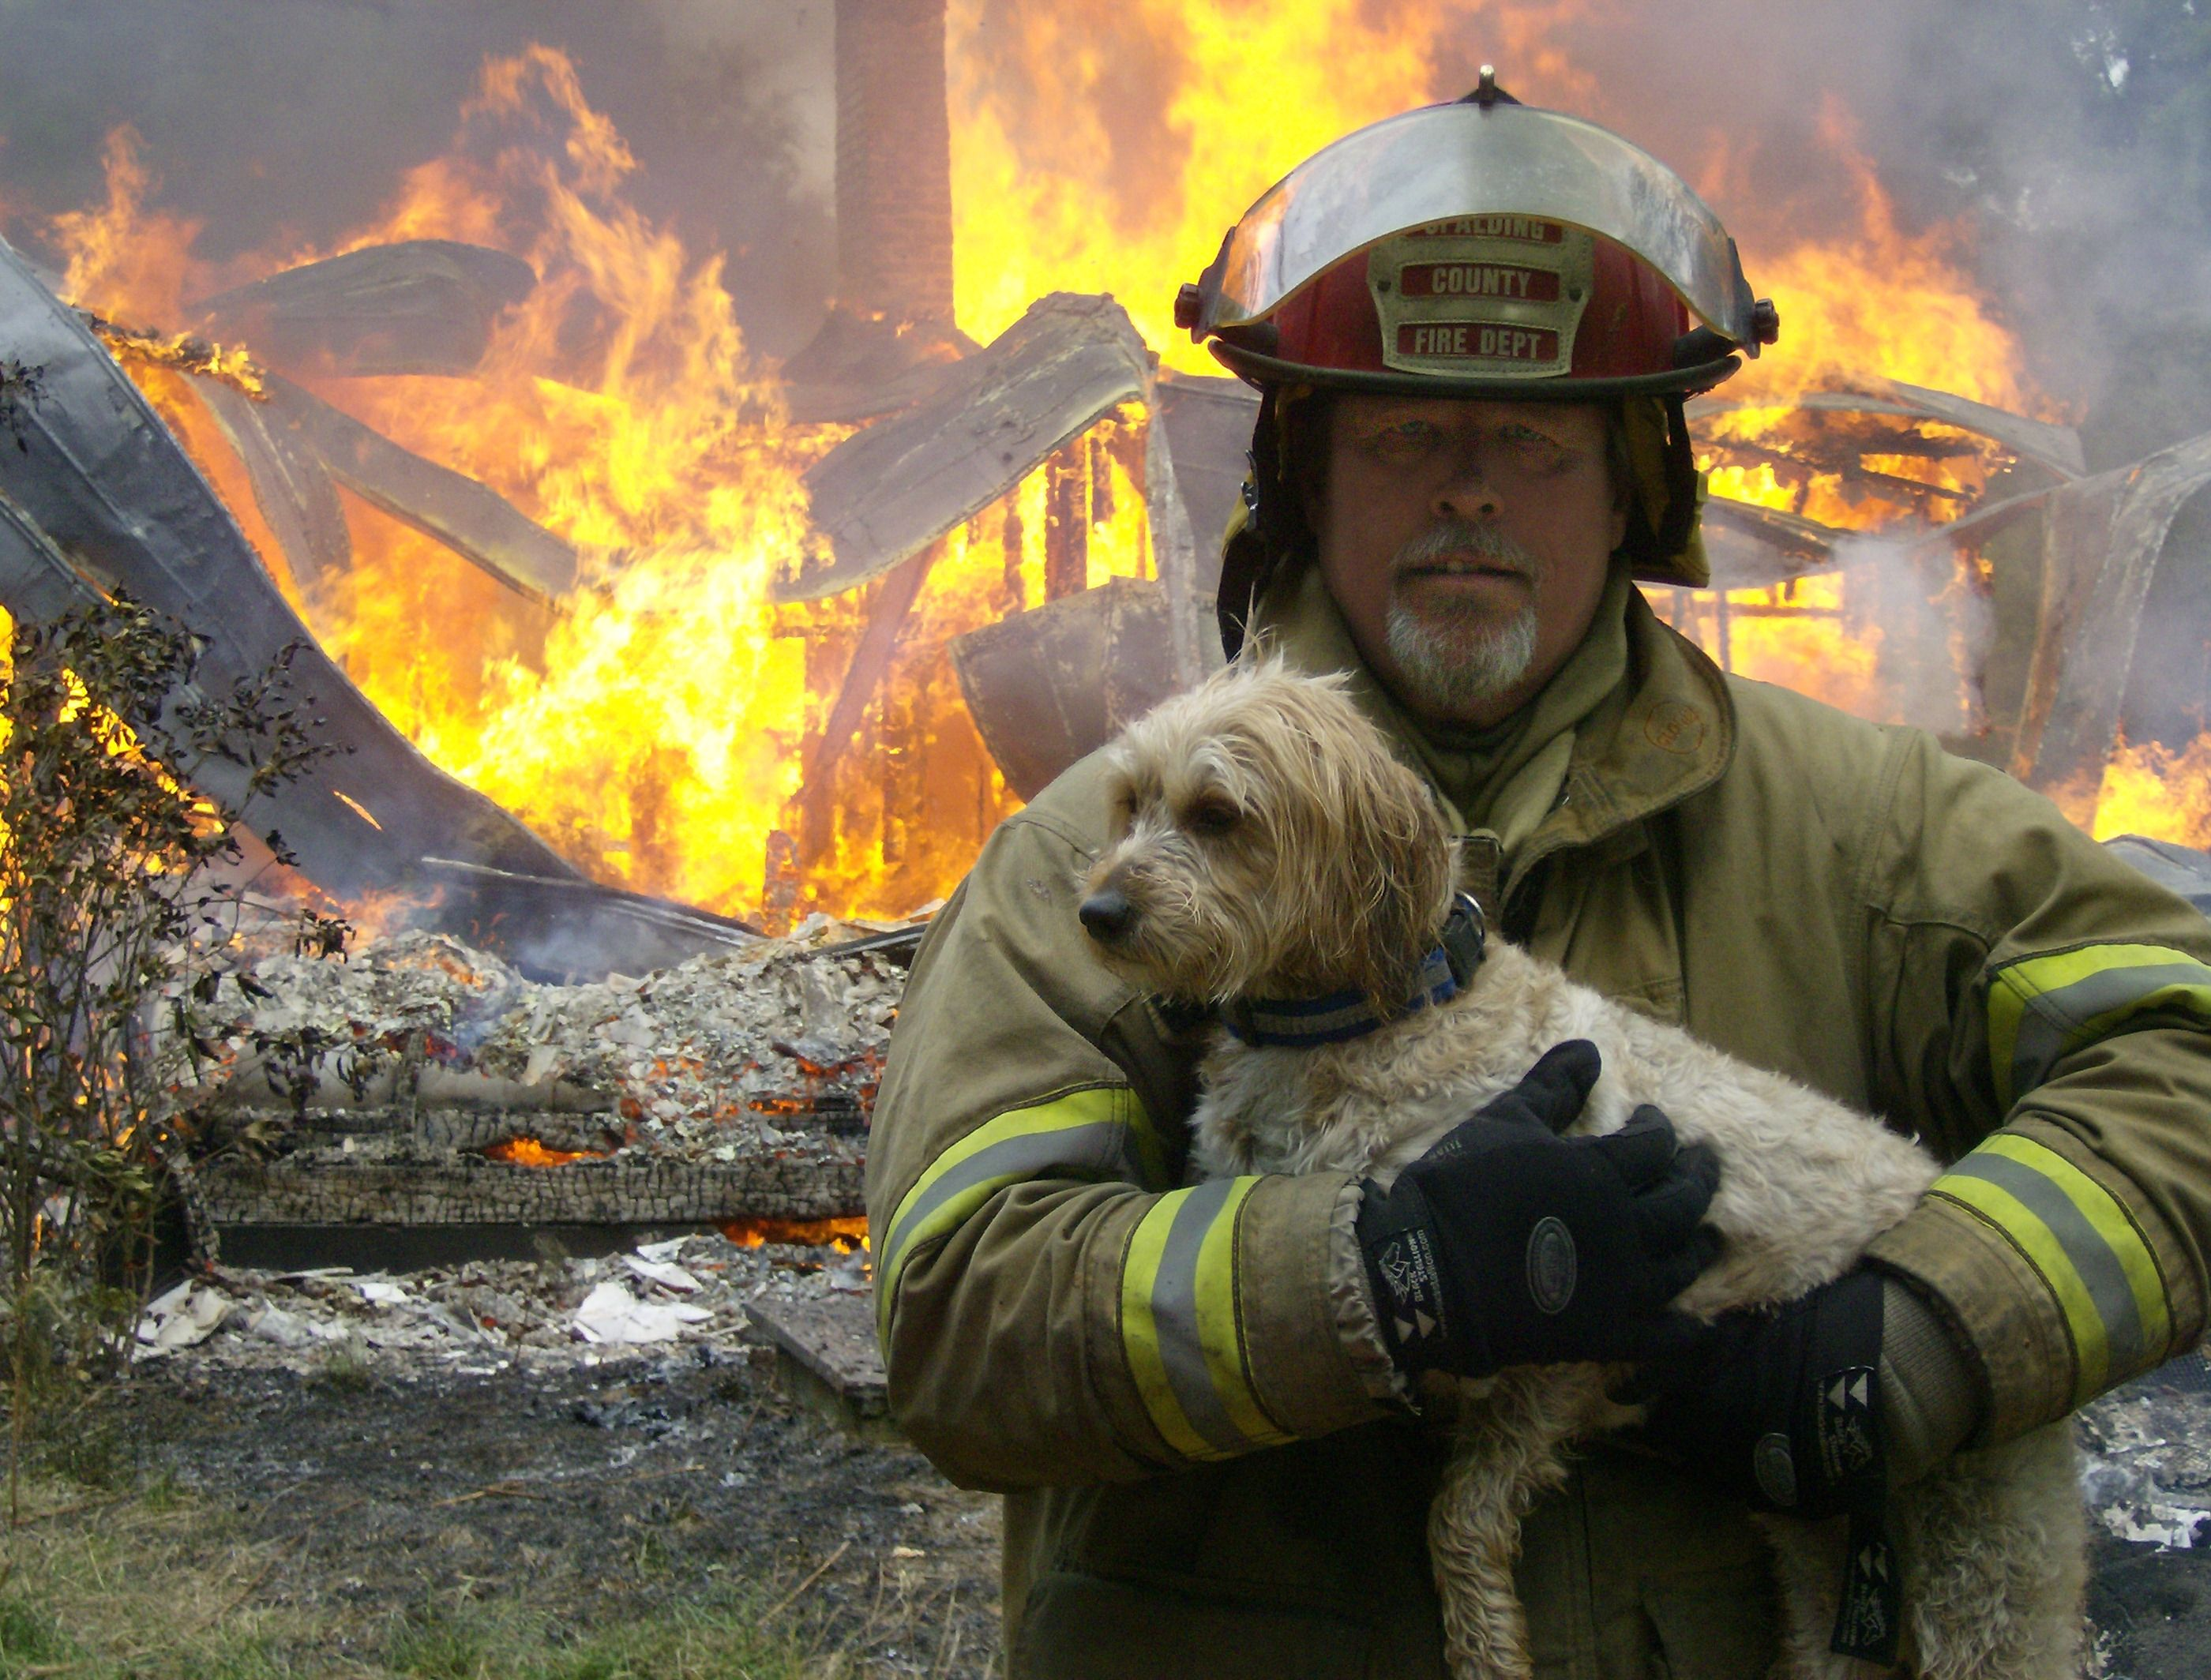 Firefighter Lt. Keith Tate holding Mr. Boo at a metro